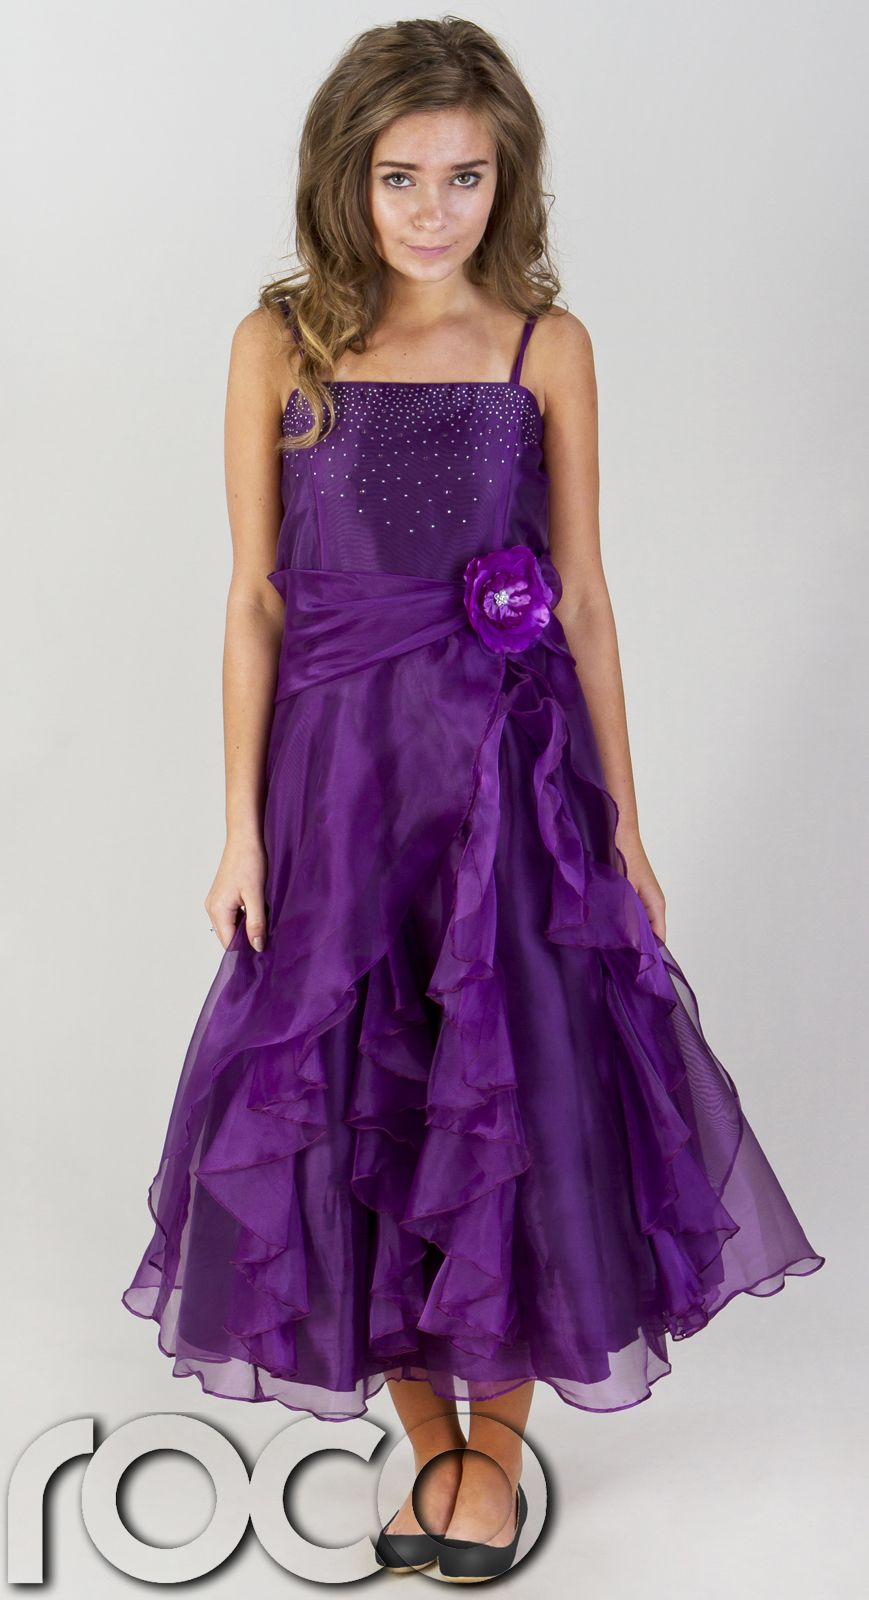 in stock sells 100% quality Girls purple wedding bridesmaid prom party flower girl dress ...